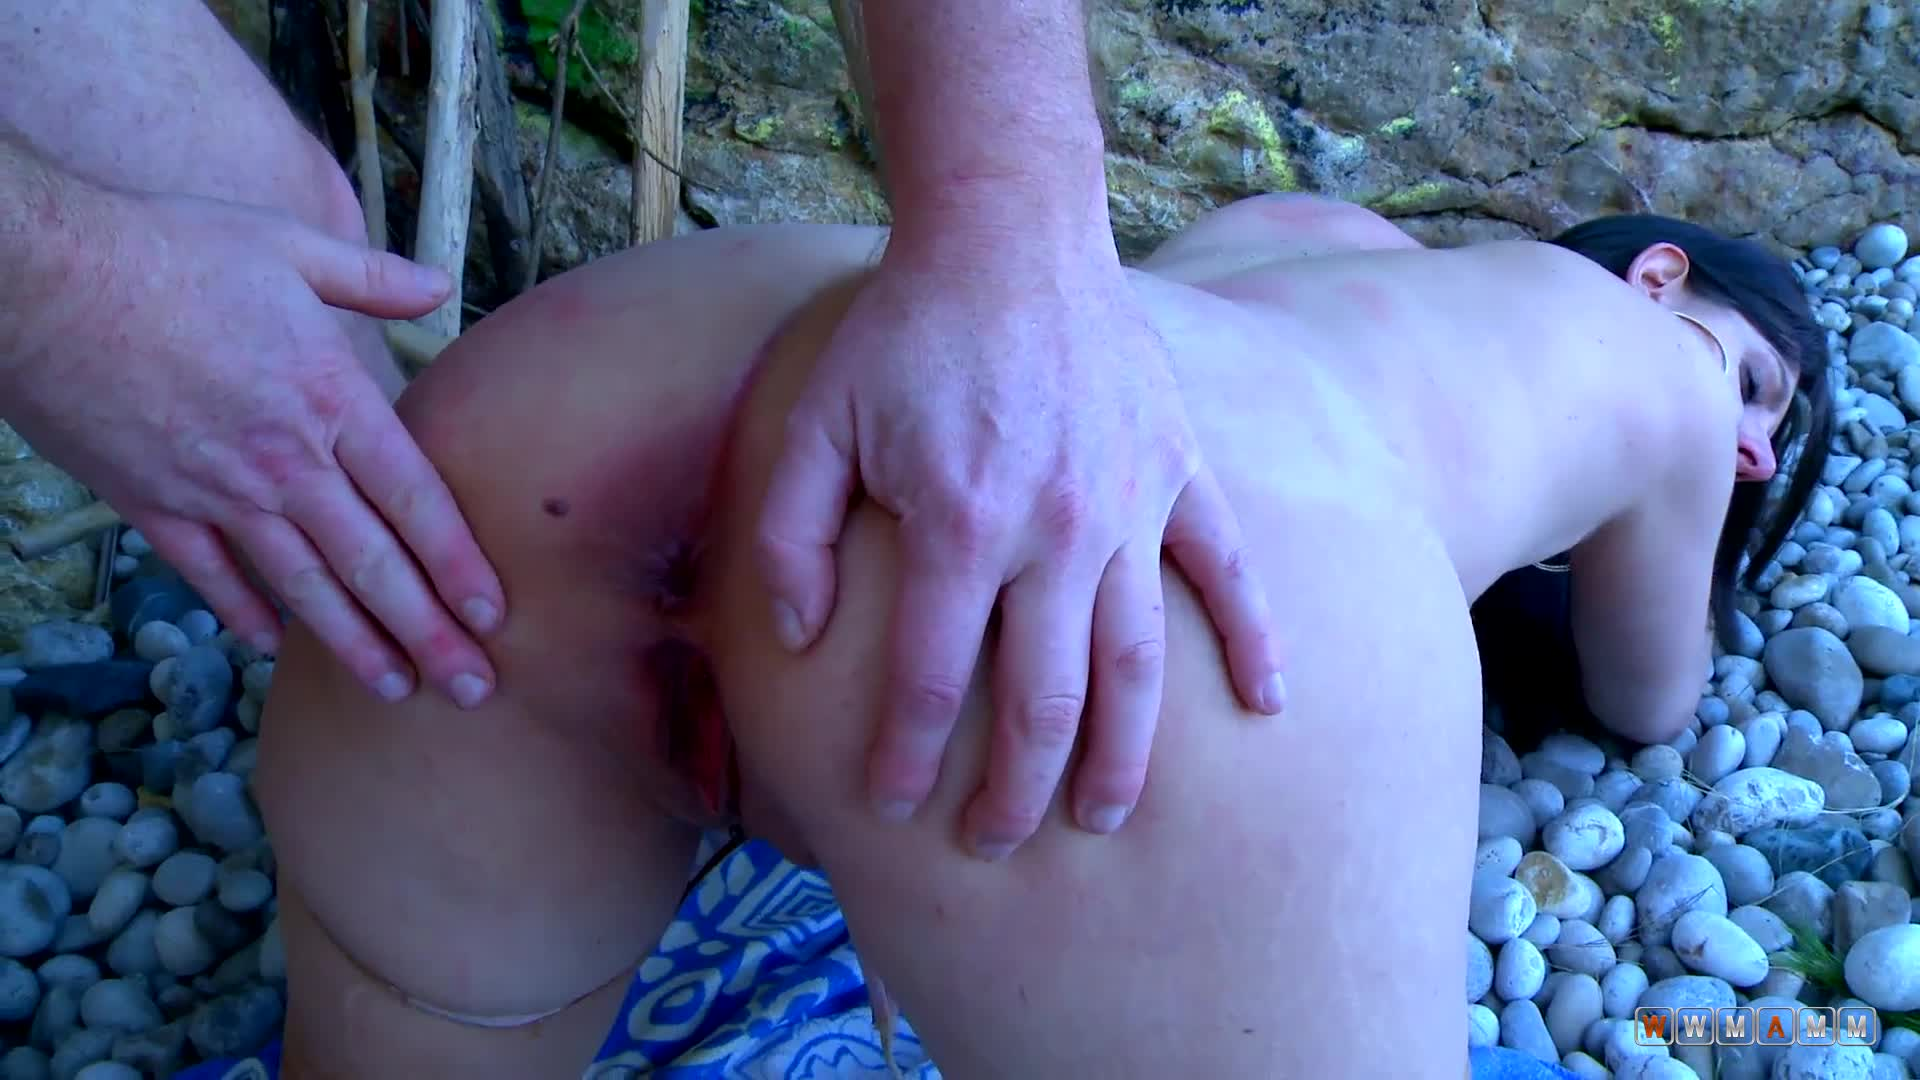 Girl With Enormous Boobs And Enormous Ass Gets Fucked Outside